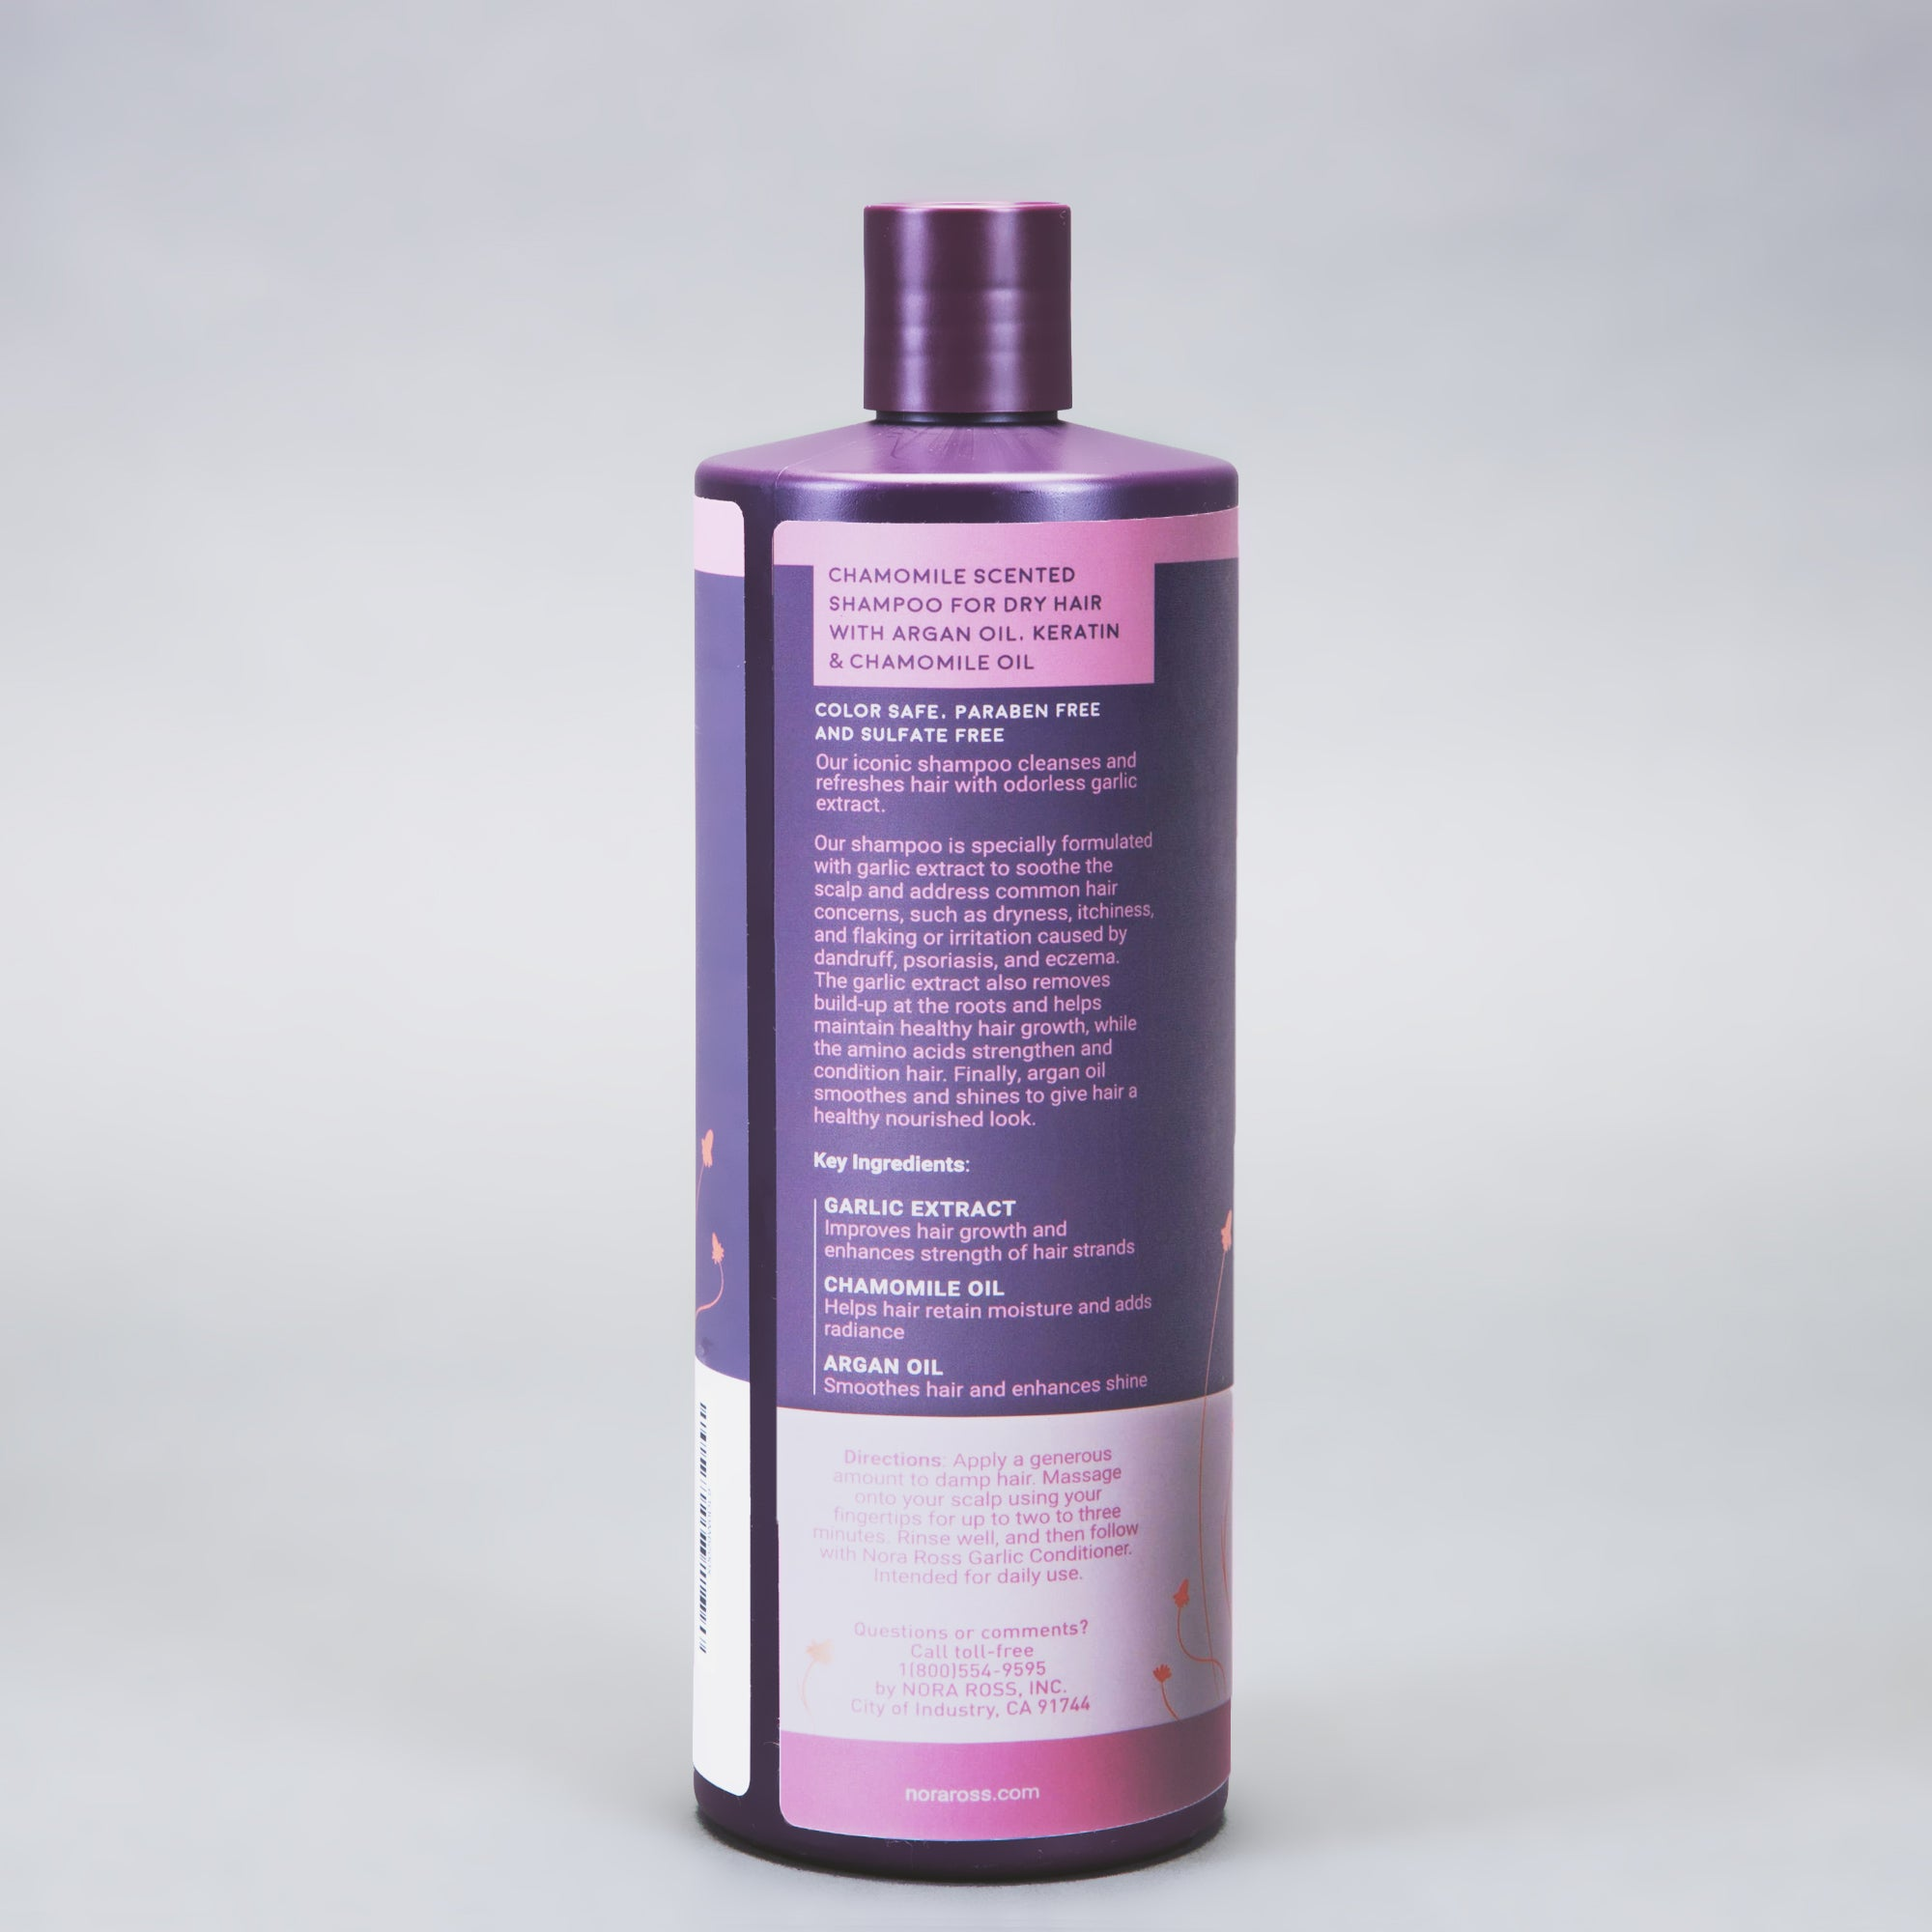 Paraben and Sulfate Free Garlic Extract Shampoo For Normal to Dry Hair